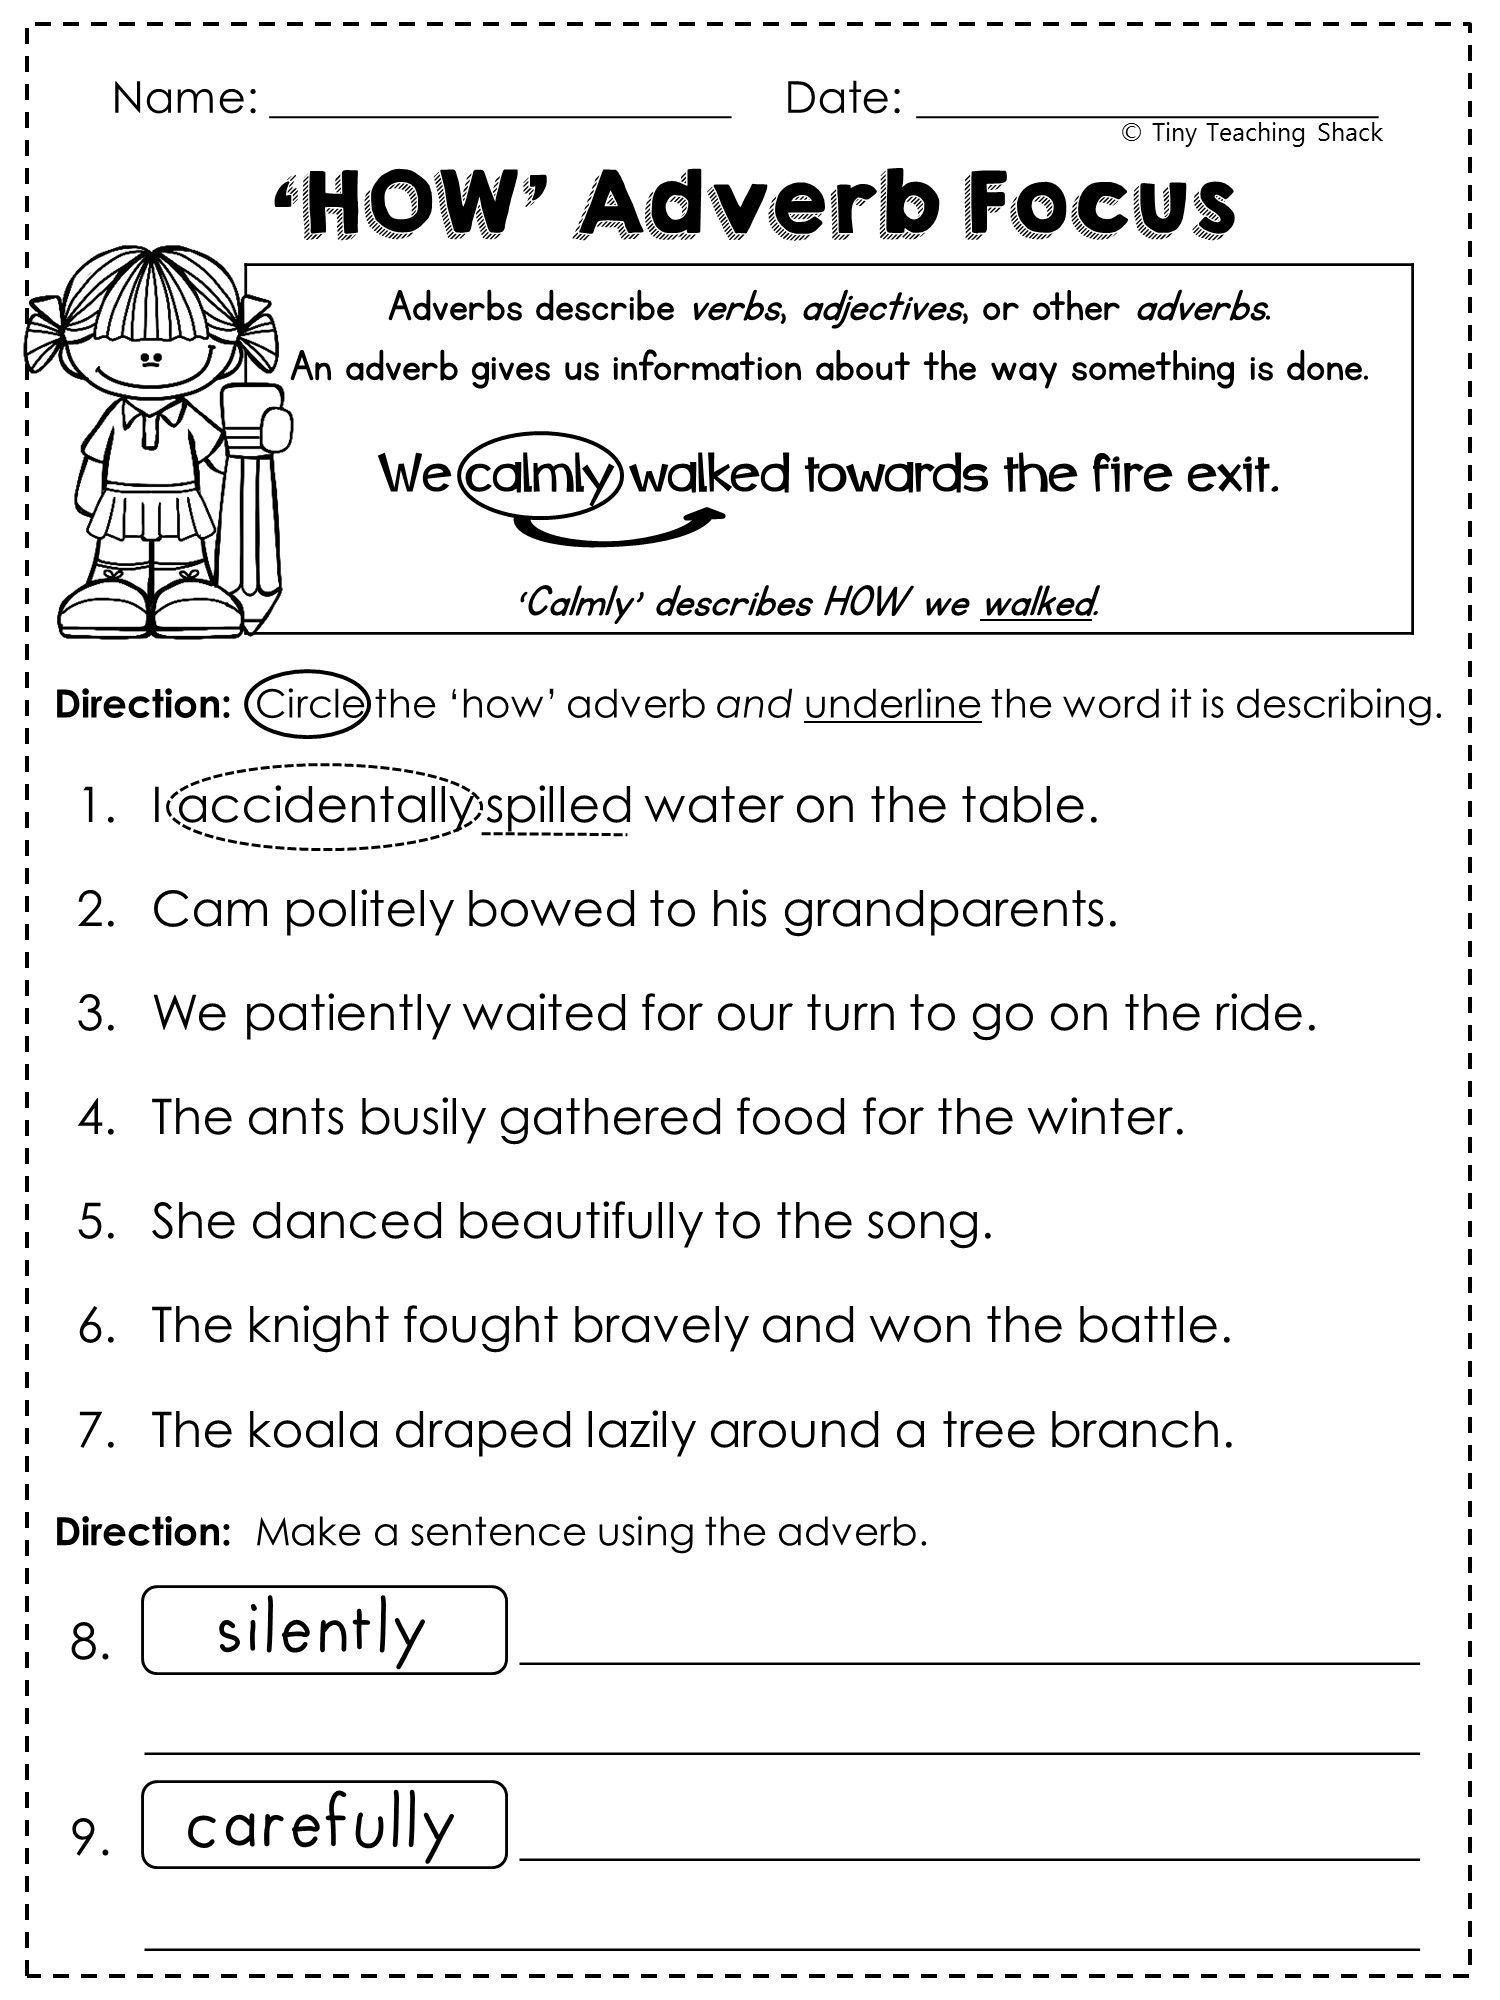 Grammar Worksheets for 2nd Grade Amazing Printable Worksheets